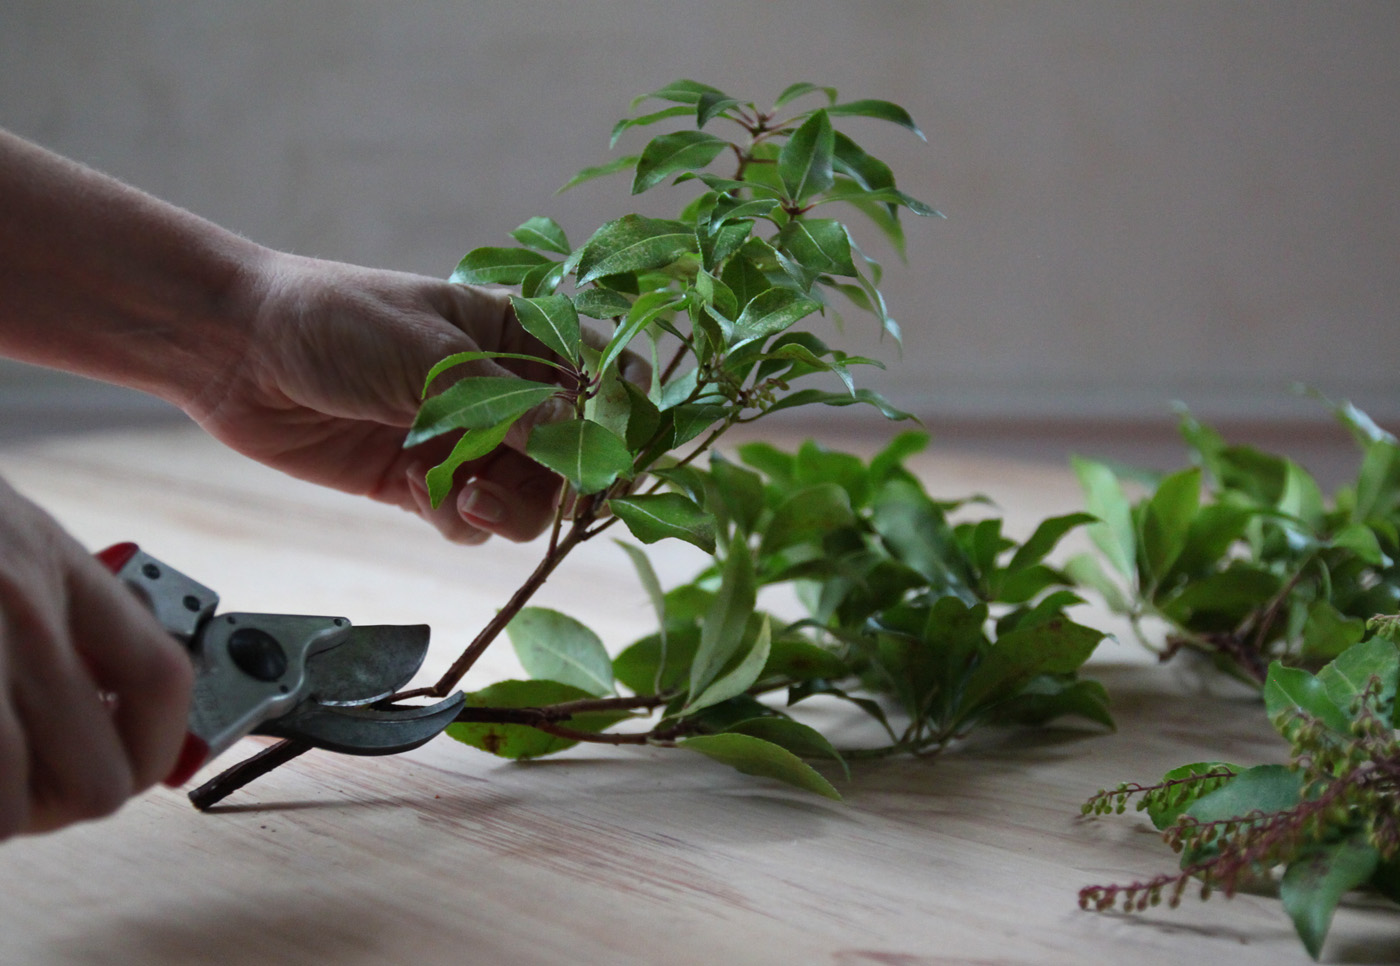 mistletoe and meyer lemon garland, trimming andromeda, by Justine Hand for Remodelista